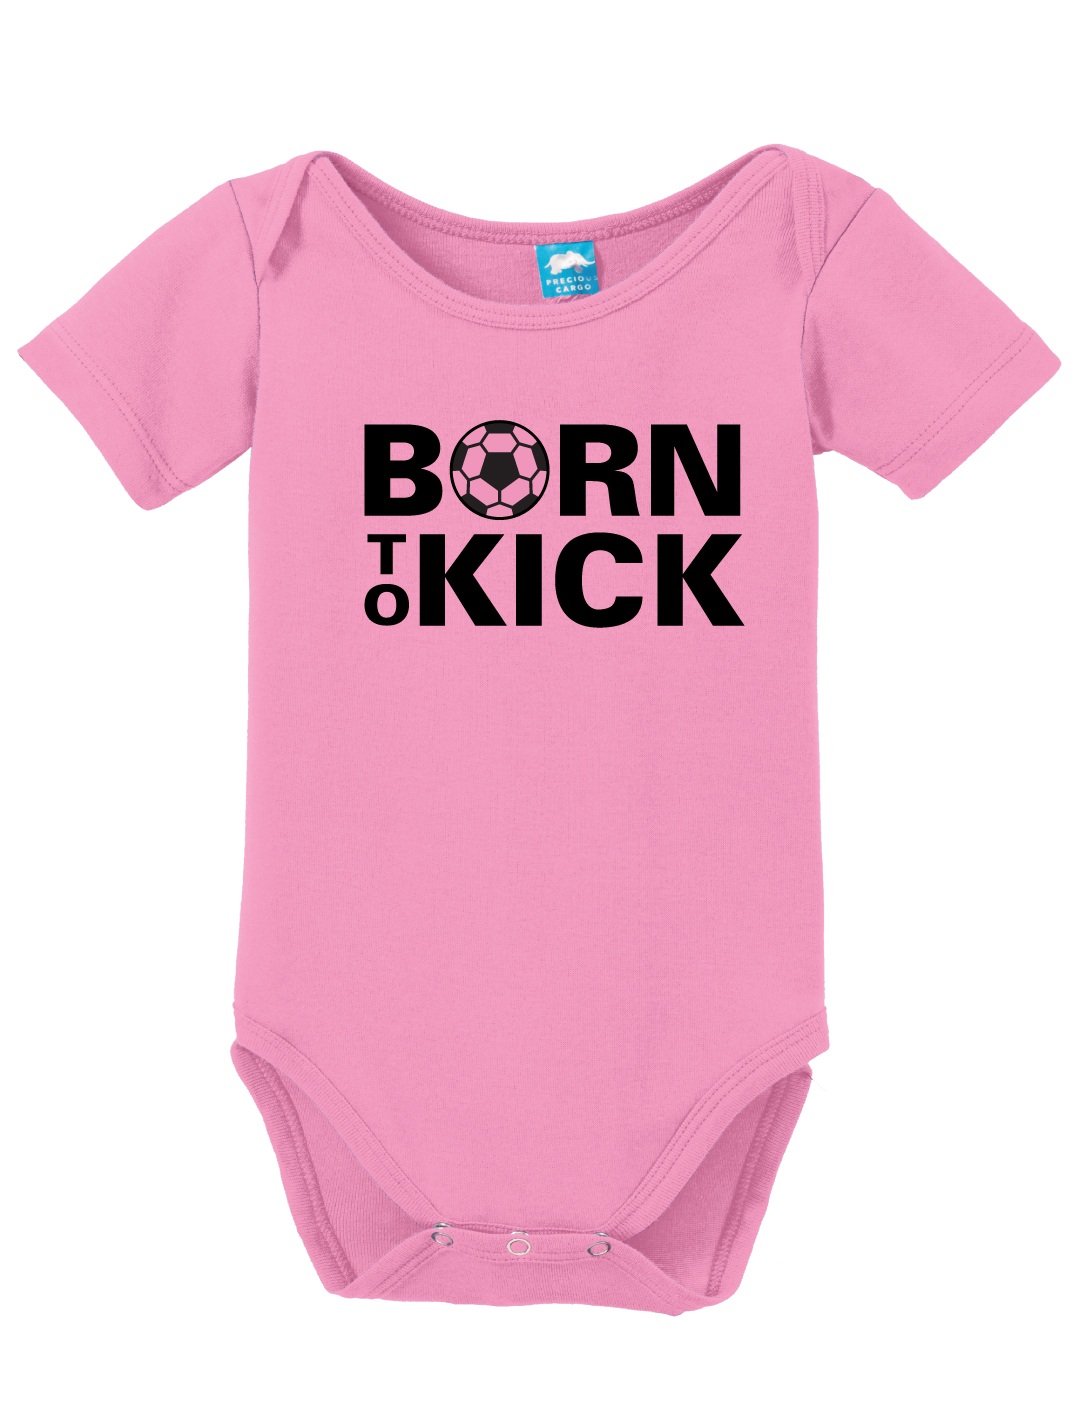 Born To Kick soccer baby onesie in pink by Code Four Athletics